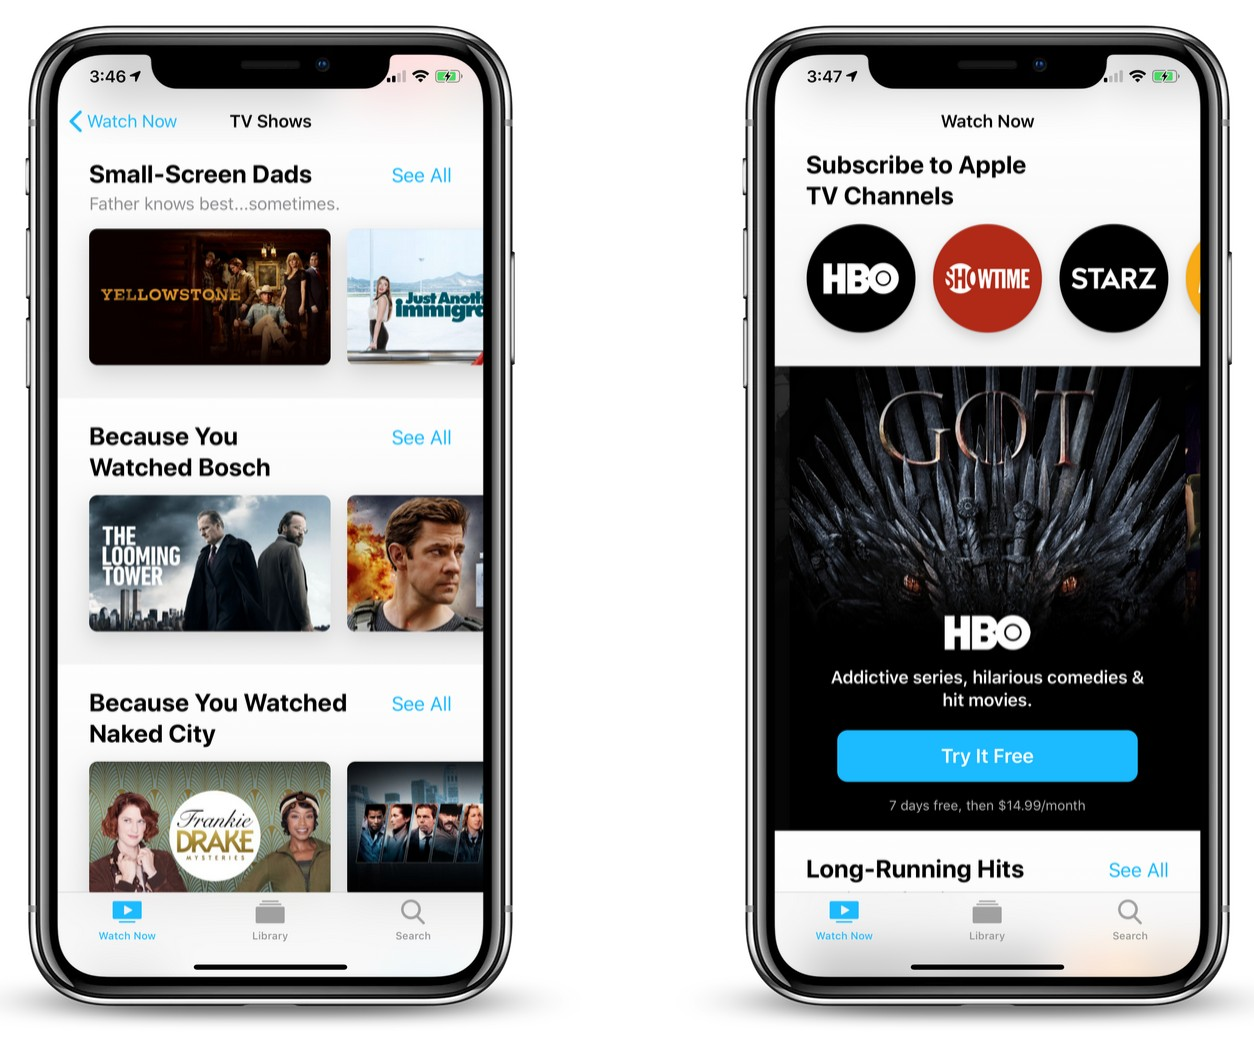 iOS 12.3 Now Available - Includes New TV App and Channels Feature